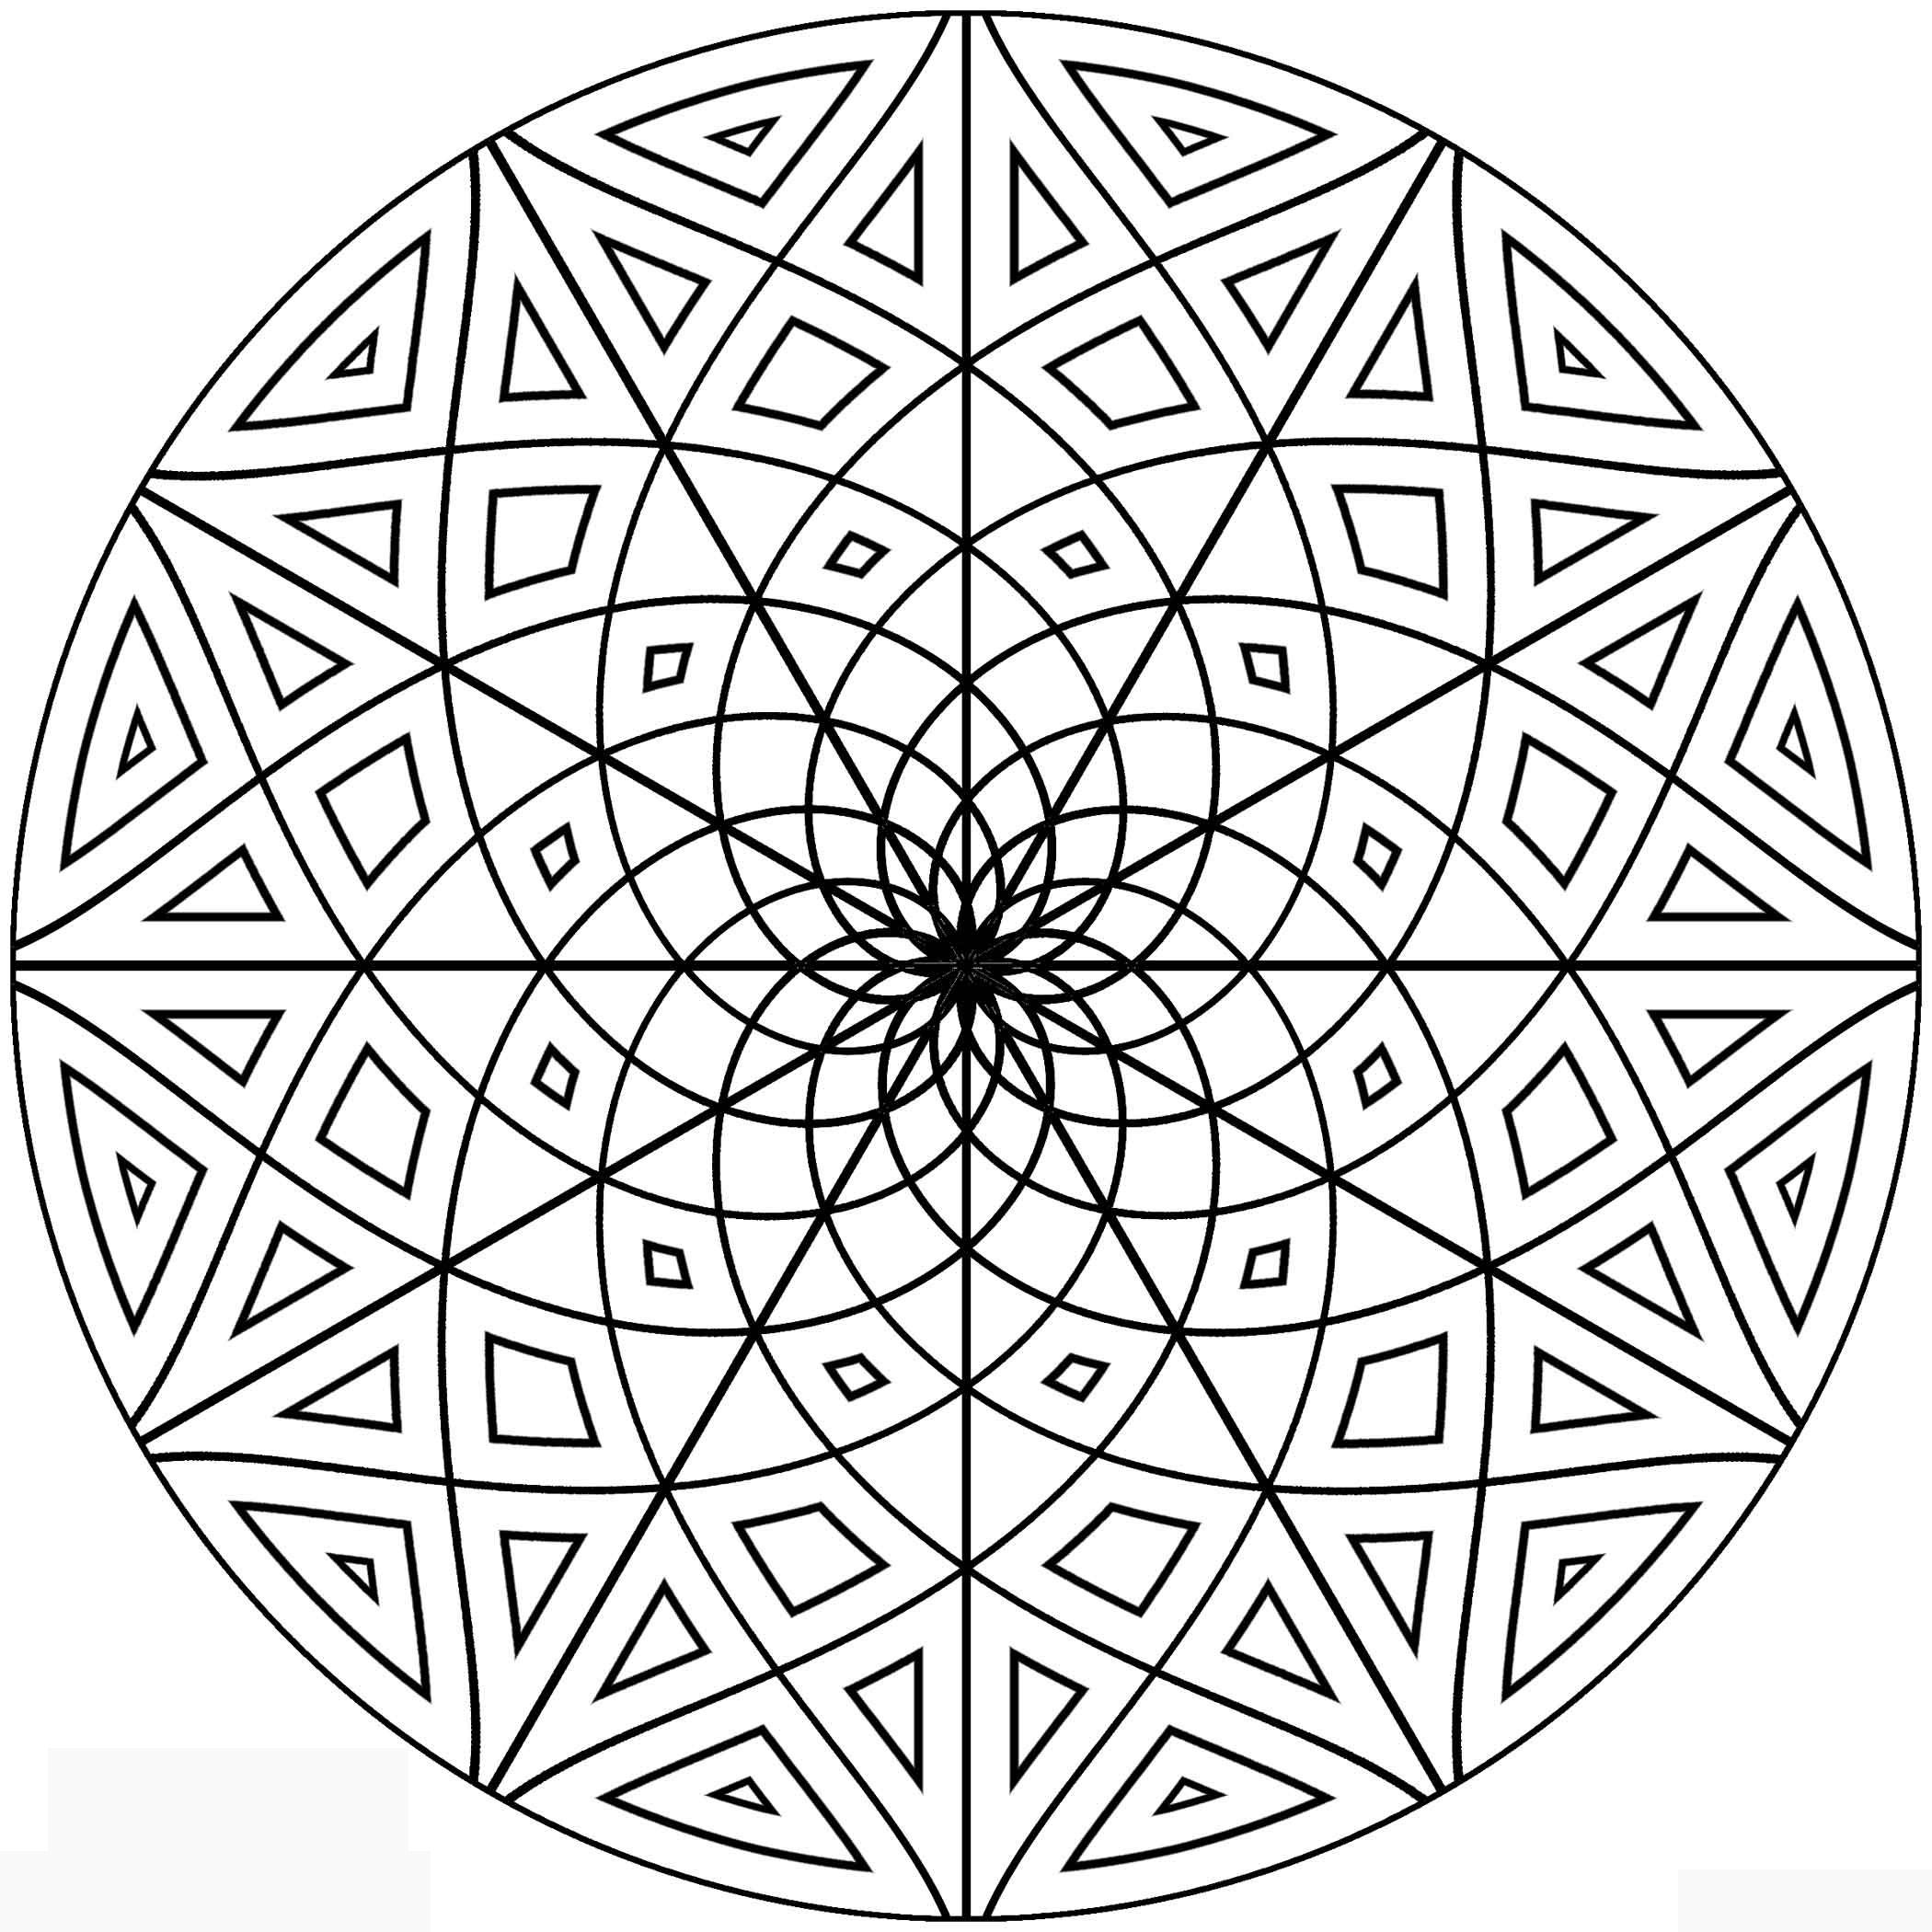 Geometric Detailed Coloring Pages Abstract Coloring Pages Geometric Coloring Pages